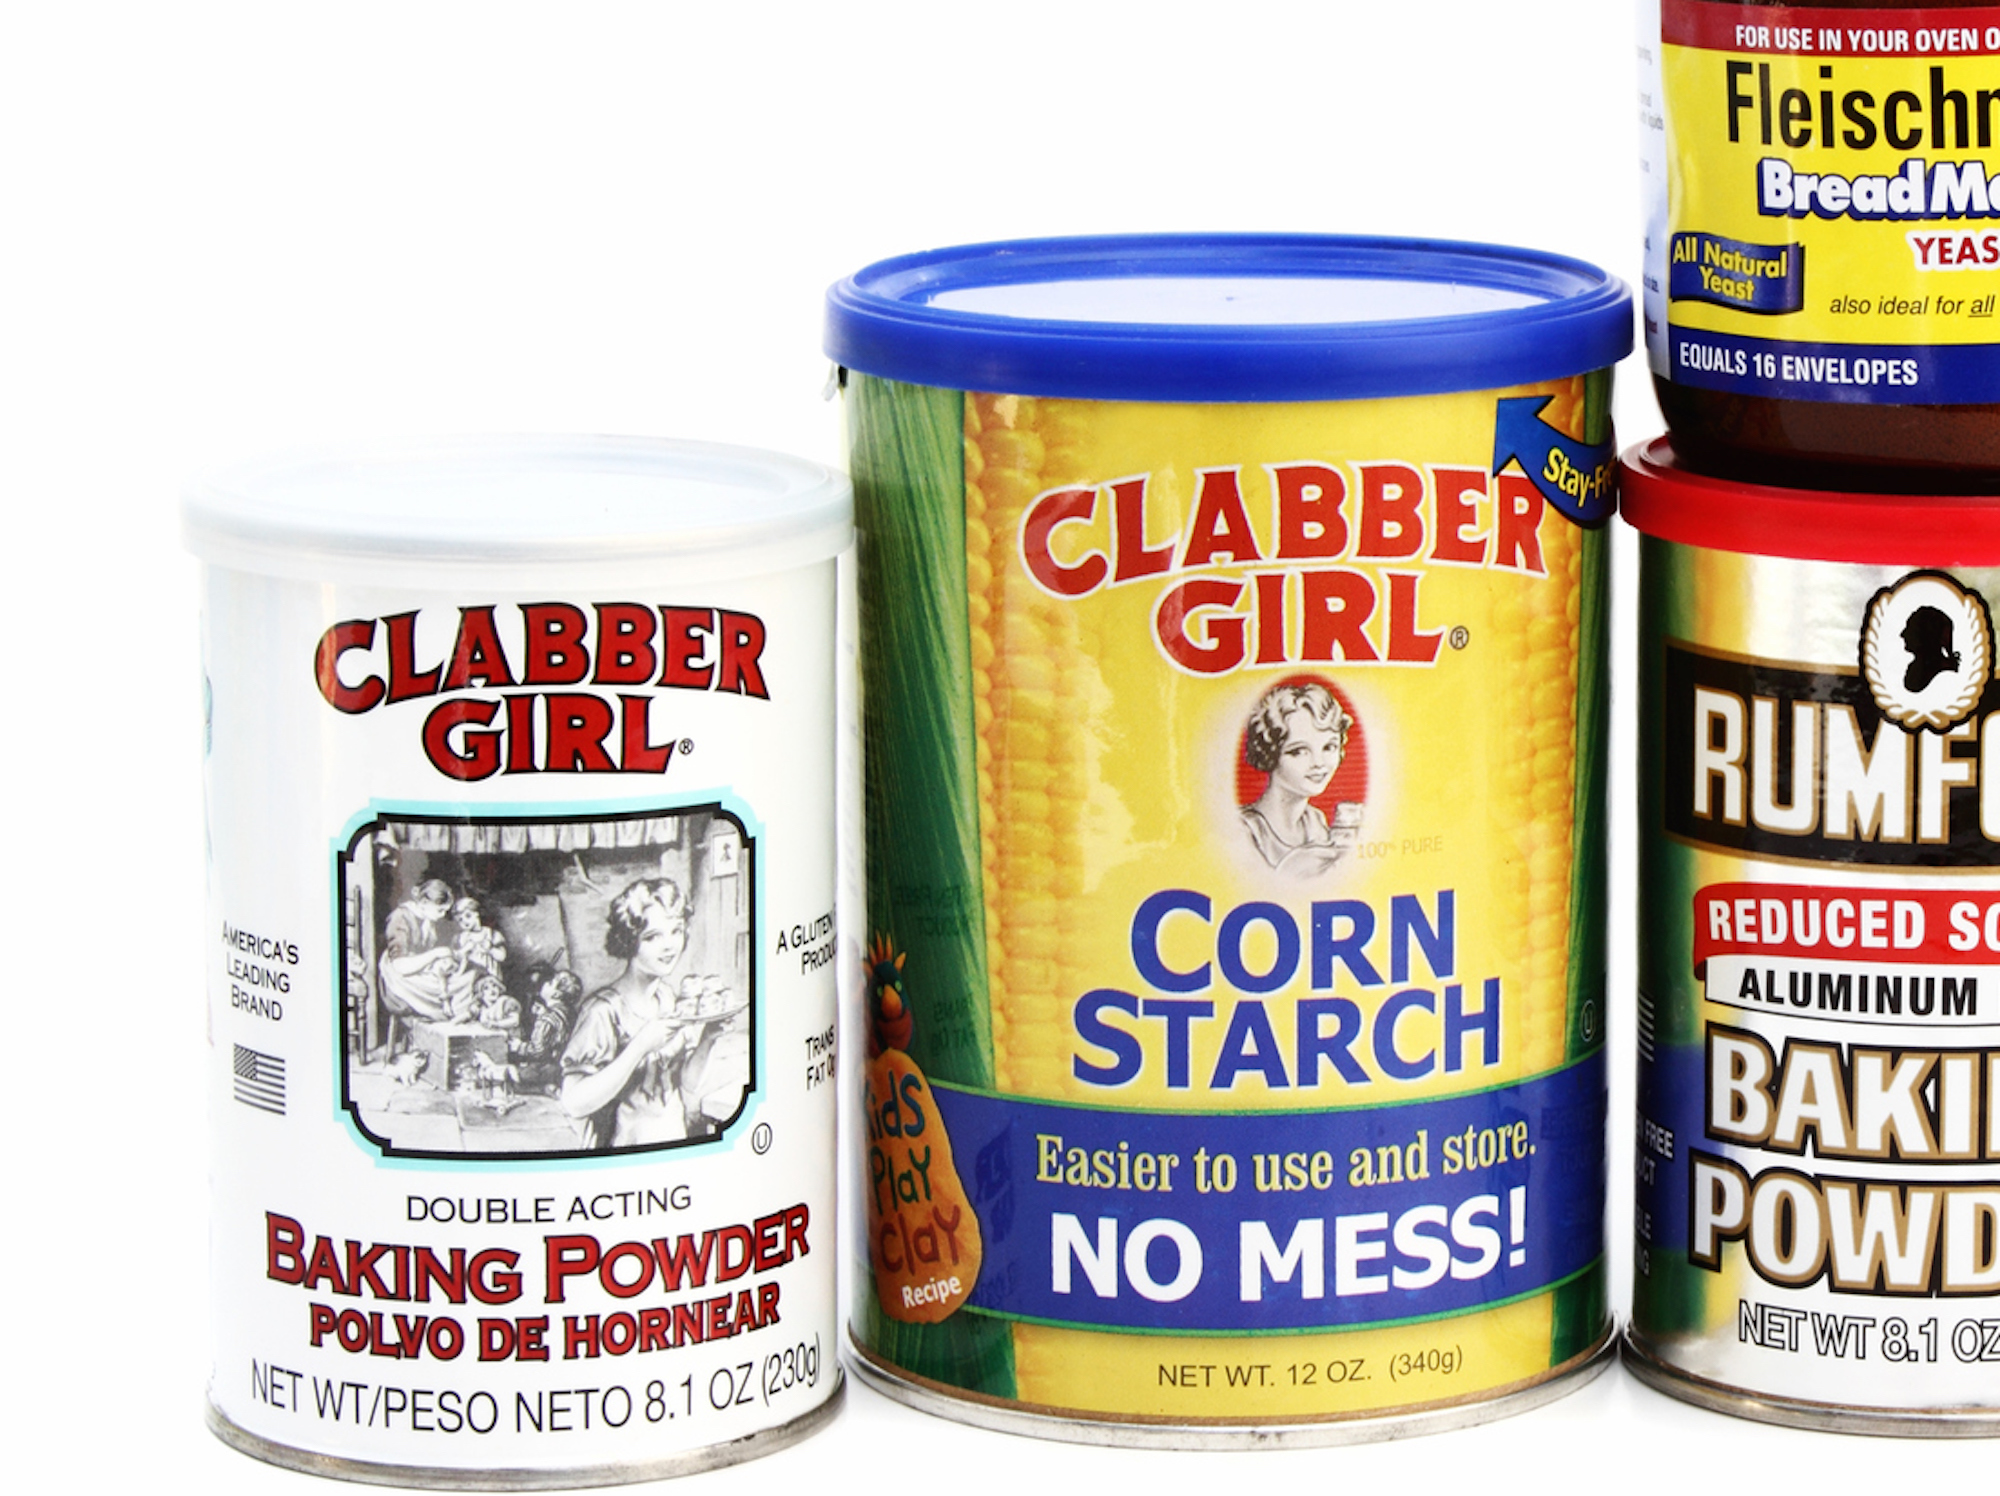 West Palm Beach, USA - December 4, 2014: Studio shot of an assortment of cooking or baking ingredients, including Clabber Girl Baking Powder and Corn Starch, Rumford Baking Powder, Fleischmann's Yeast, and McCormick Black Pepper.